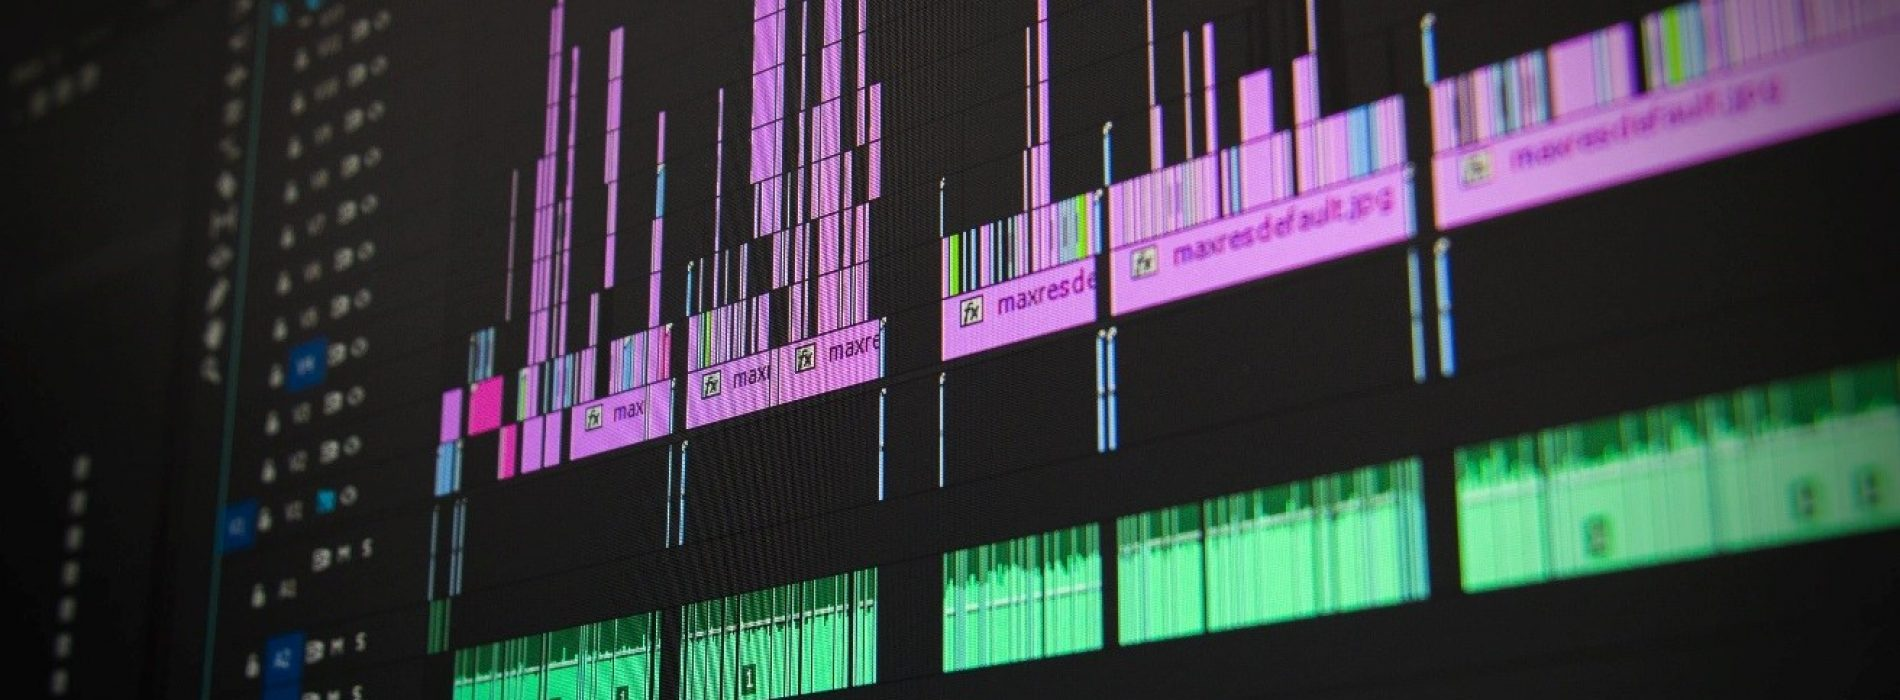 A Closer Look at Video & Audio Redaction